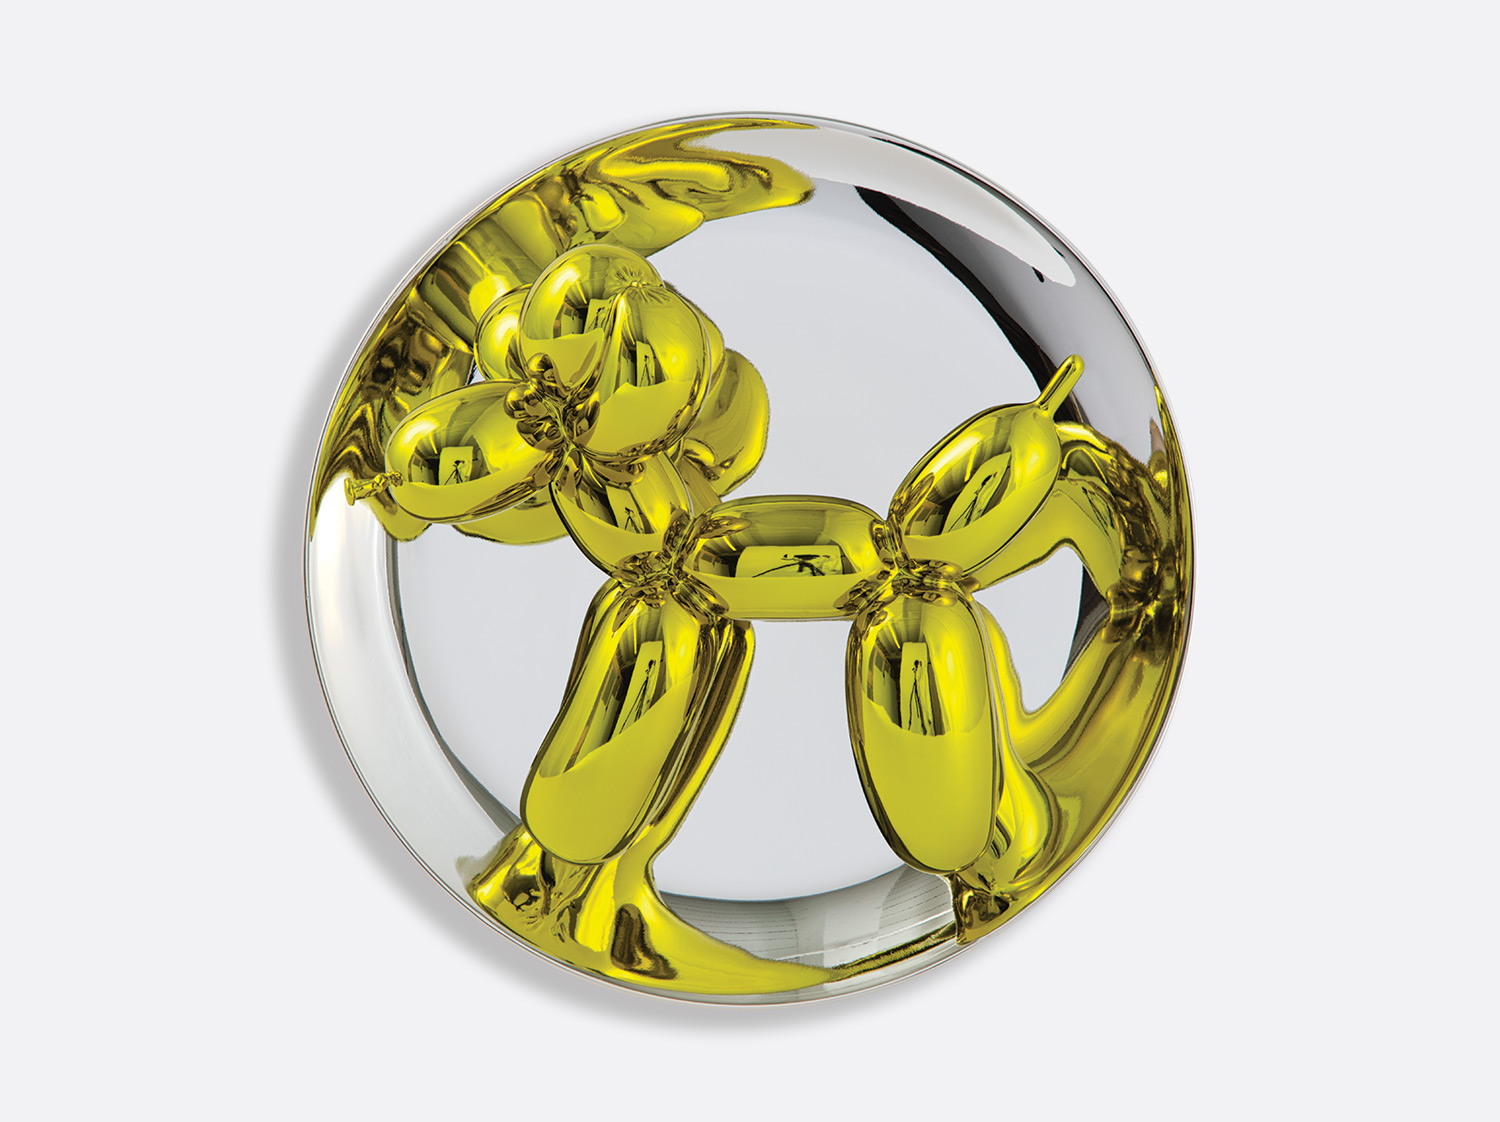 China Balloon dog (yellow) 26,7 cm of the collection Balloon dog (yellow) | Bernardaud